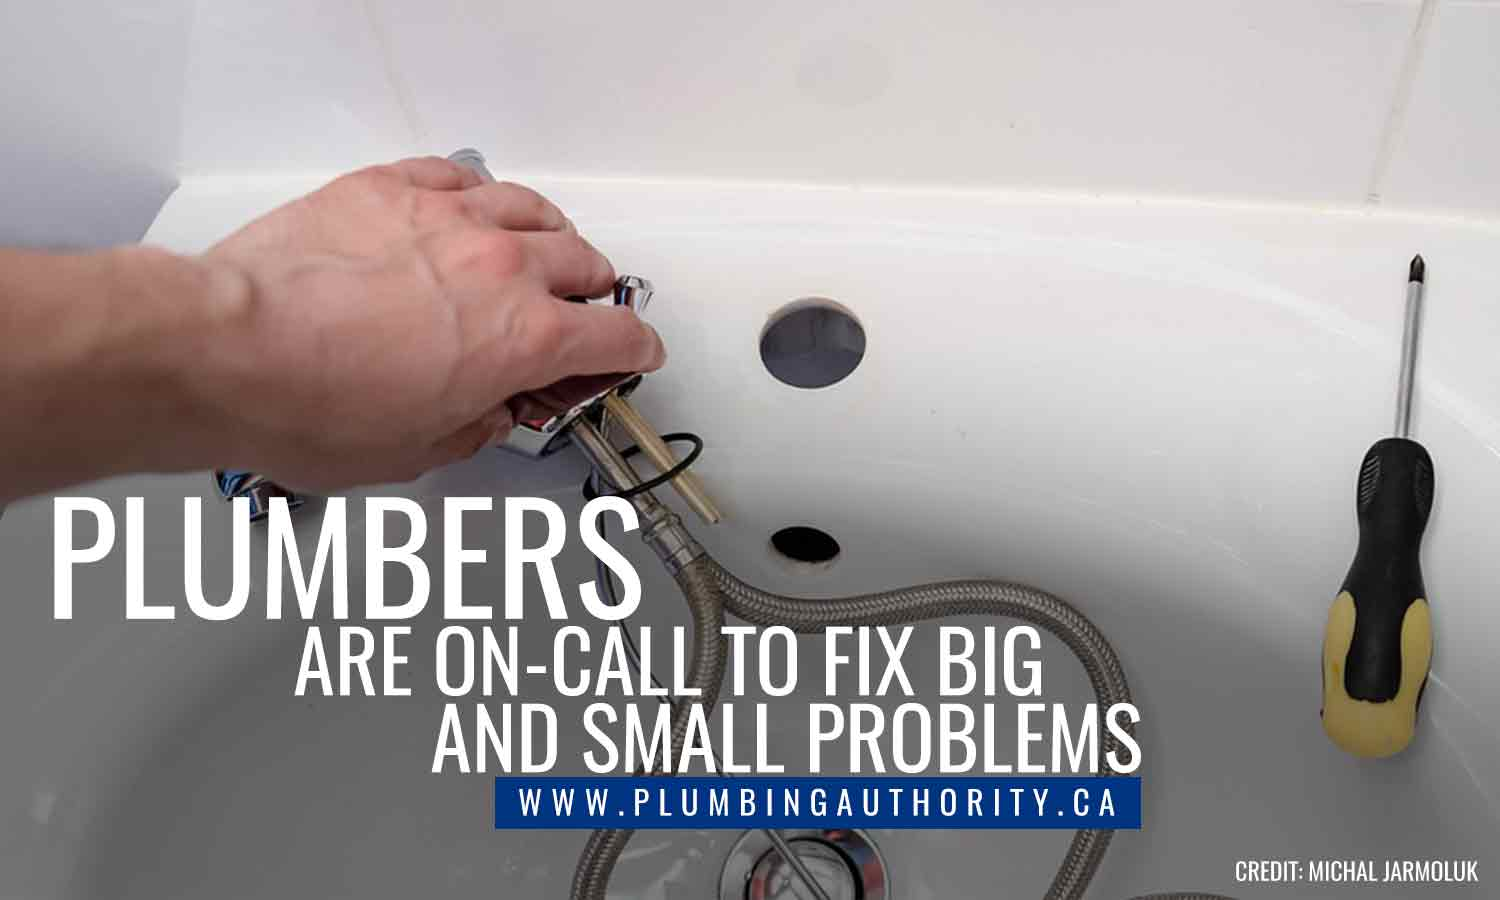 Plumbers are on-call to fix big and small problems